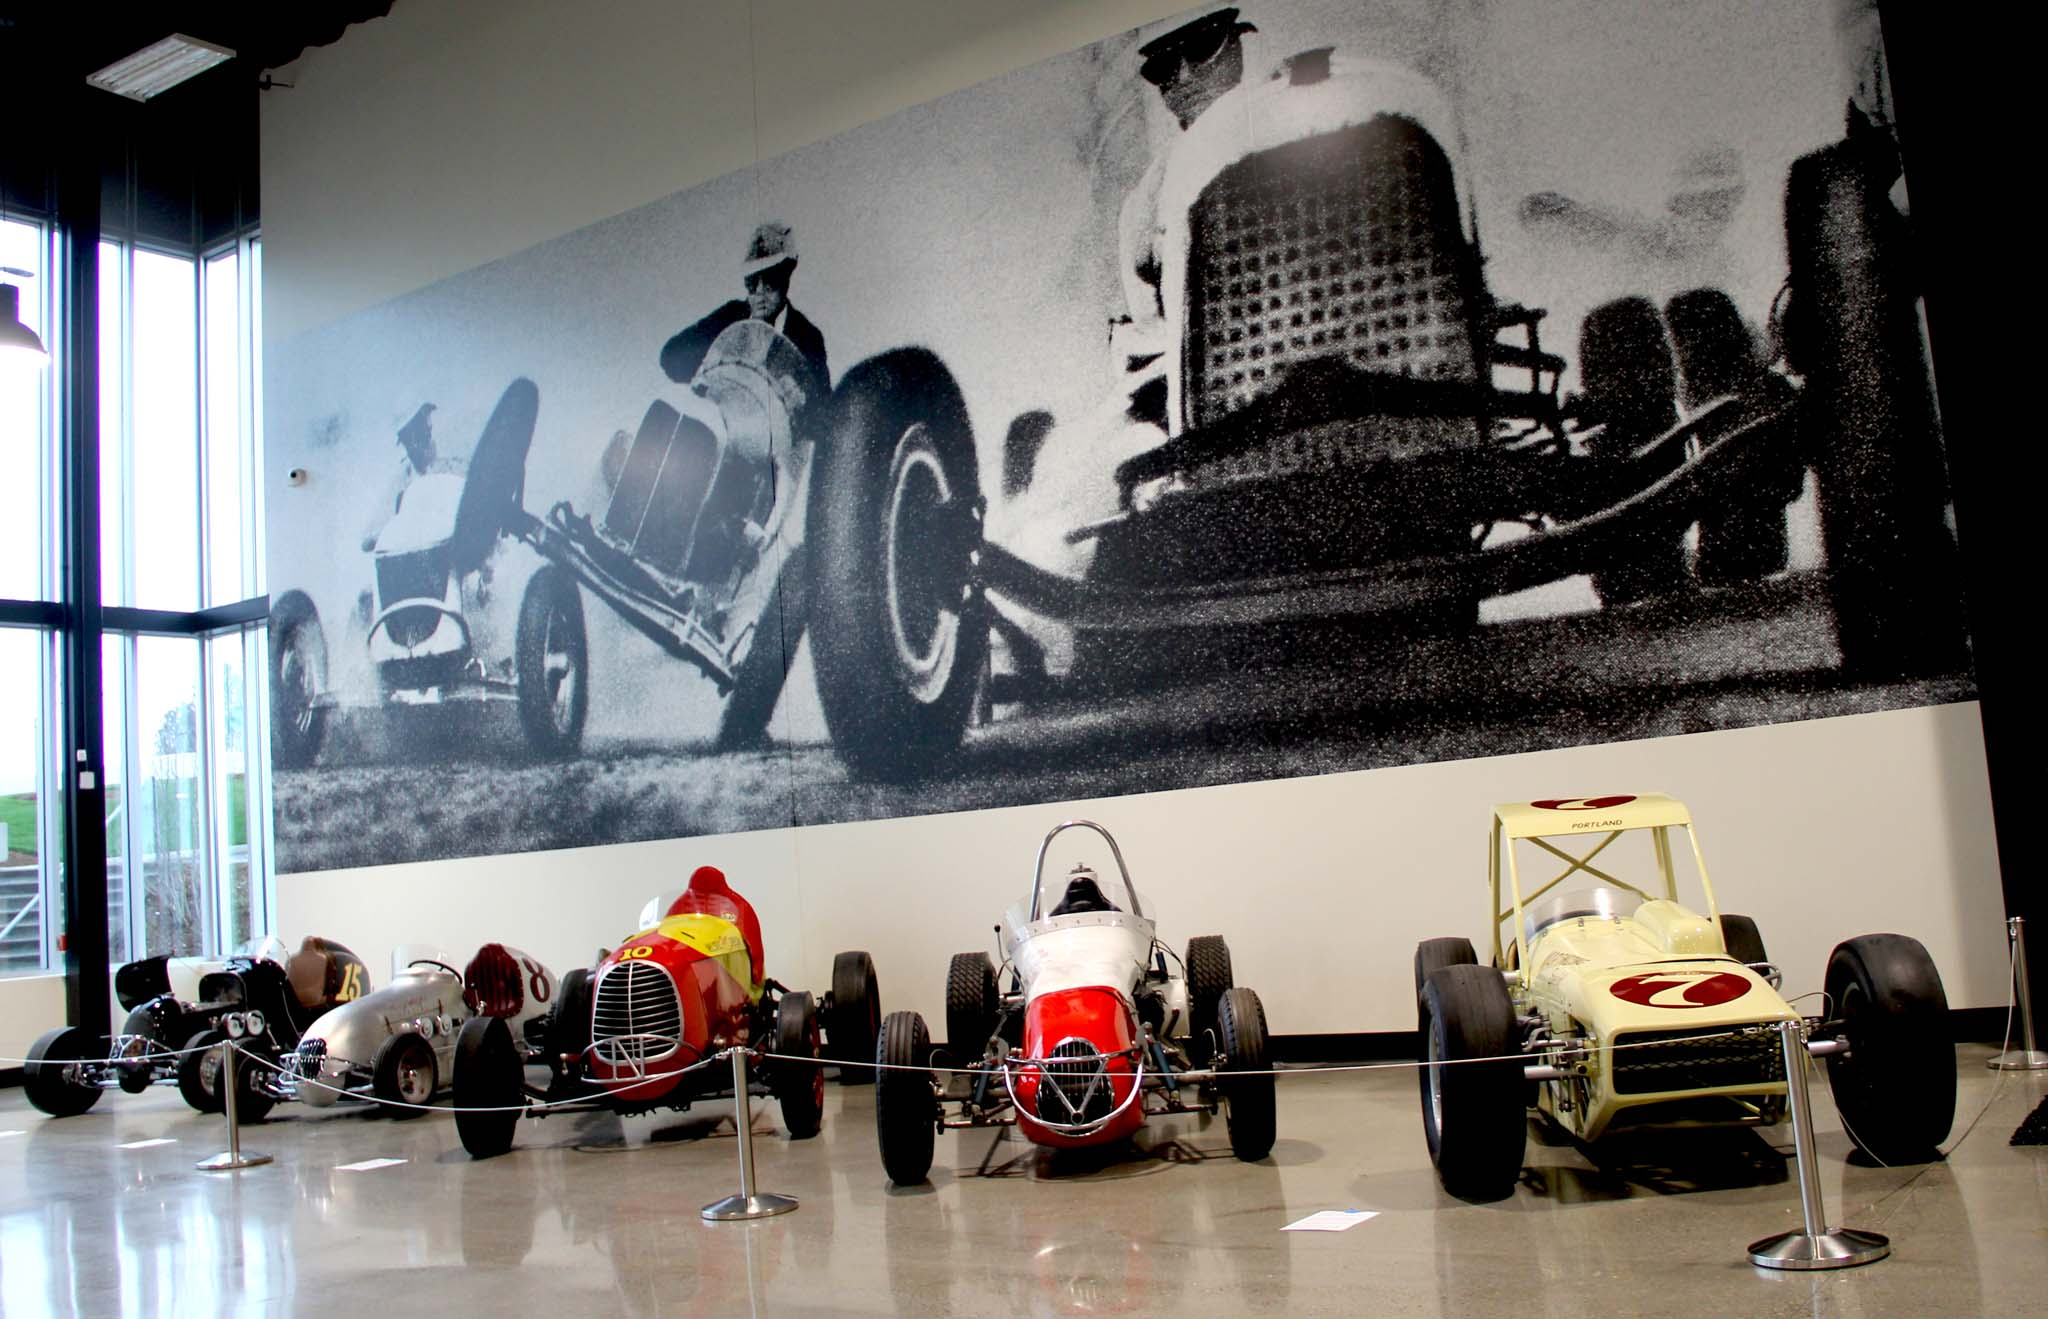 Though the museum attempts not to be provincial, this display is a celebration of the rich history of open-wheel racing from the Pacific Northwest. The museum has attempted to collect some of landmark sprinters and midgets, including the Eddie Kuzma–built midget driven by Gordy Youngstom, the Kuzma-built aluminum midget of Harry Meyer, the Nelson's Ranger Special tank engine big car, Del McClure's Chrysler-powered big car, and Bob Gregg's Chinhauser Modified.